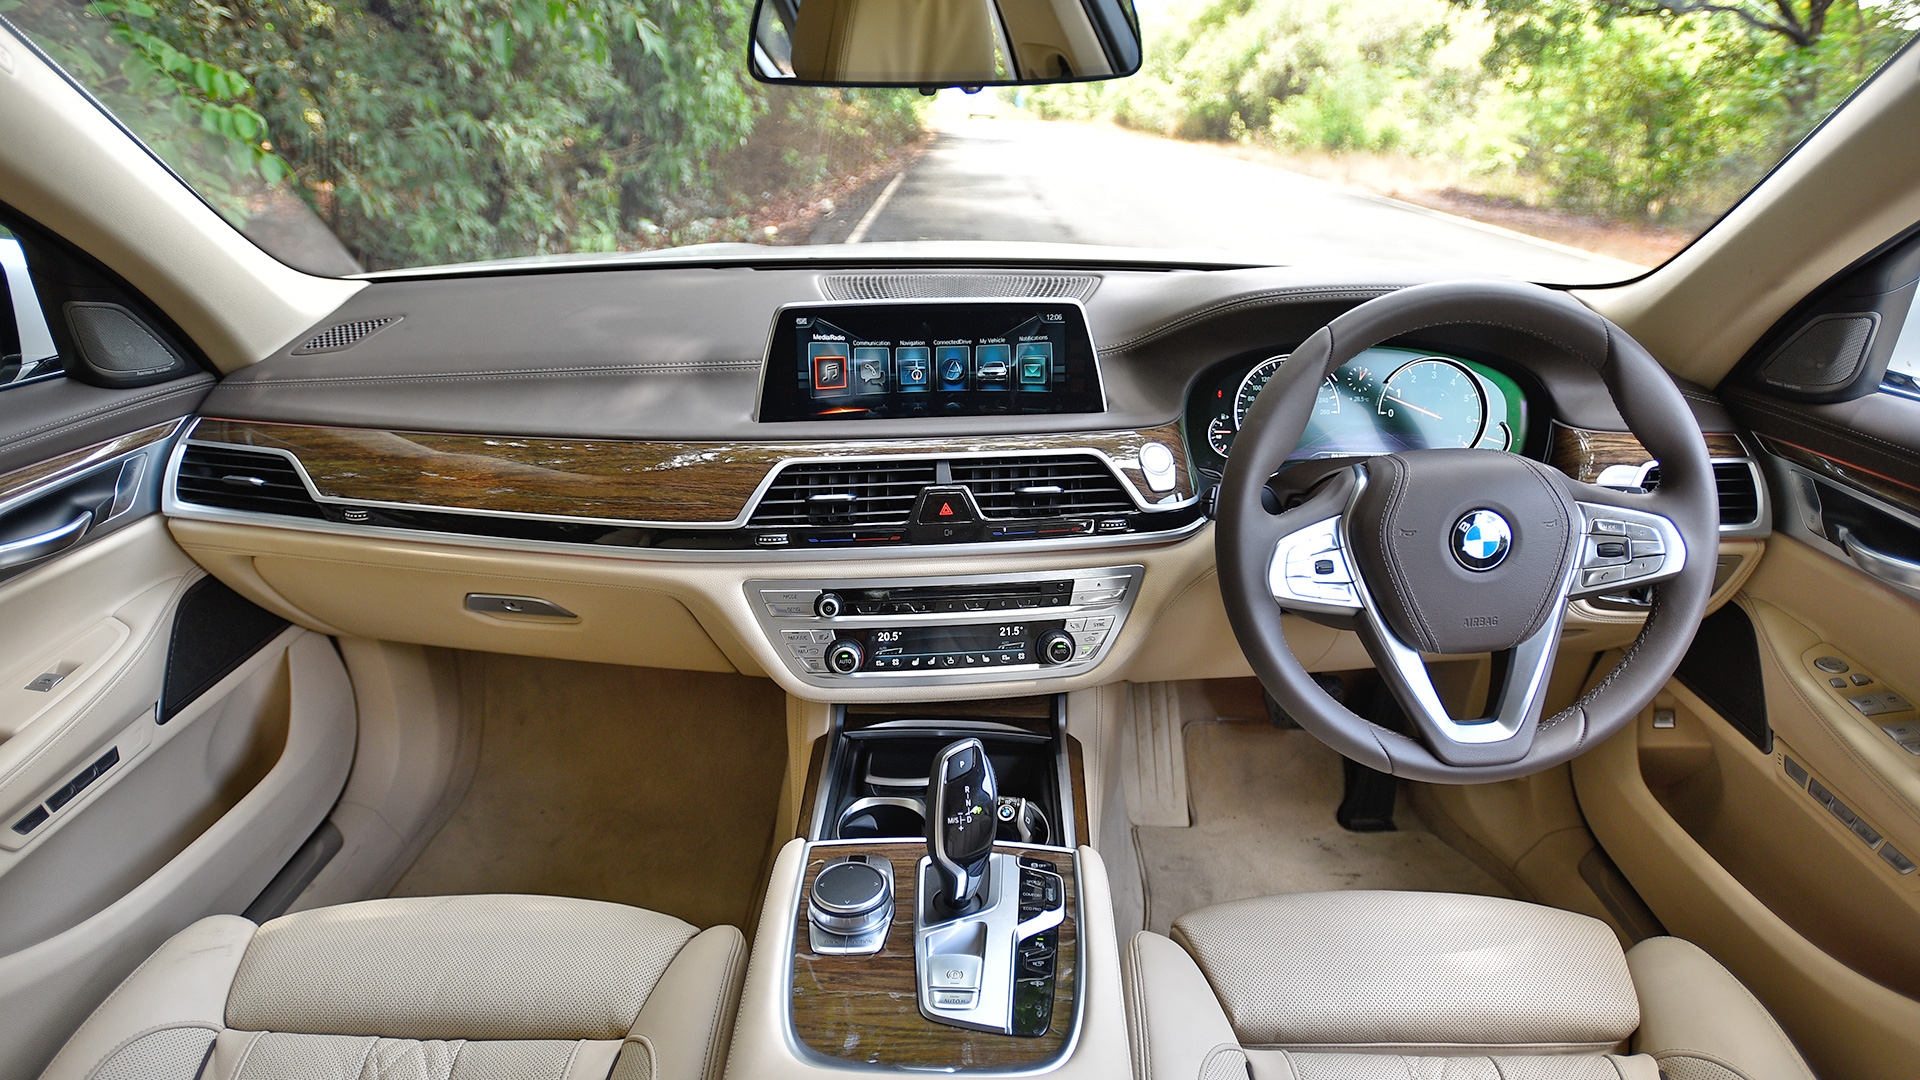 Bmw Exterior: BMW 7 Series 2017 740Li DPE Signature Exterior Car Photos